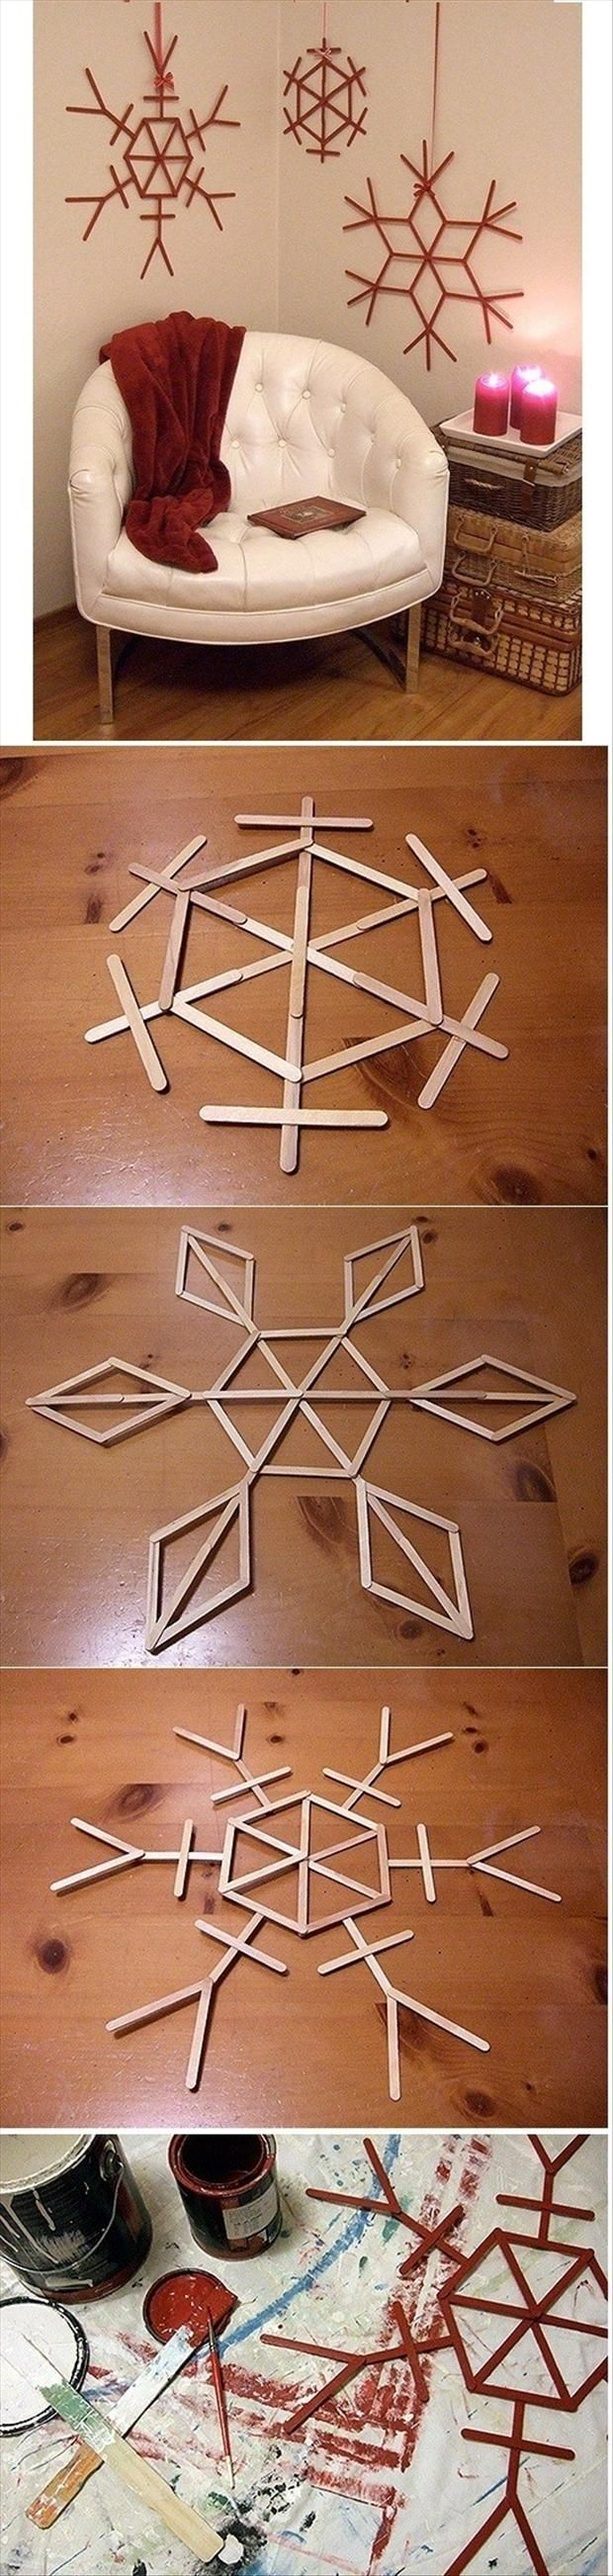 christmas craft ideas (17).  Pinning for the popsicle stick and coffee stir snowflake project